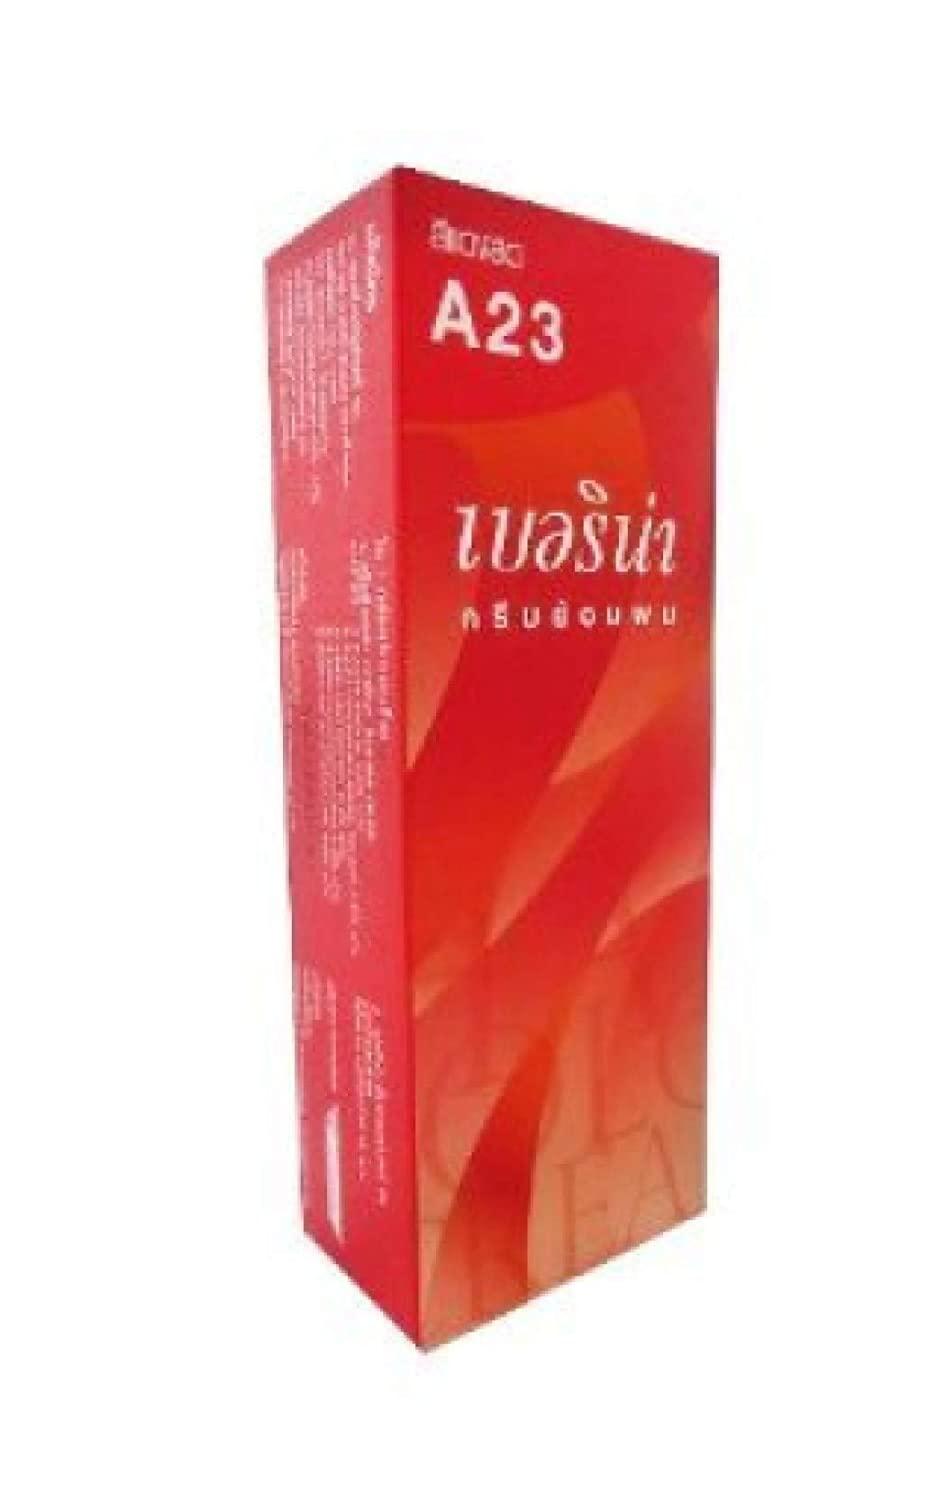 Berina (A23) Permanent Hair Color Dye Bright Red Color